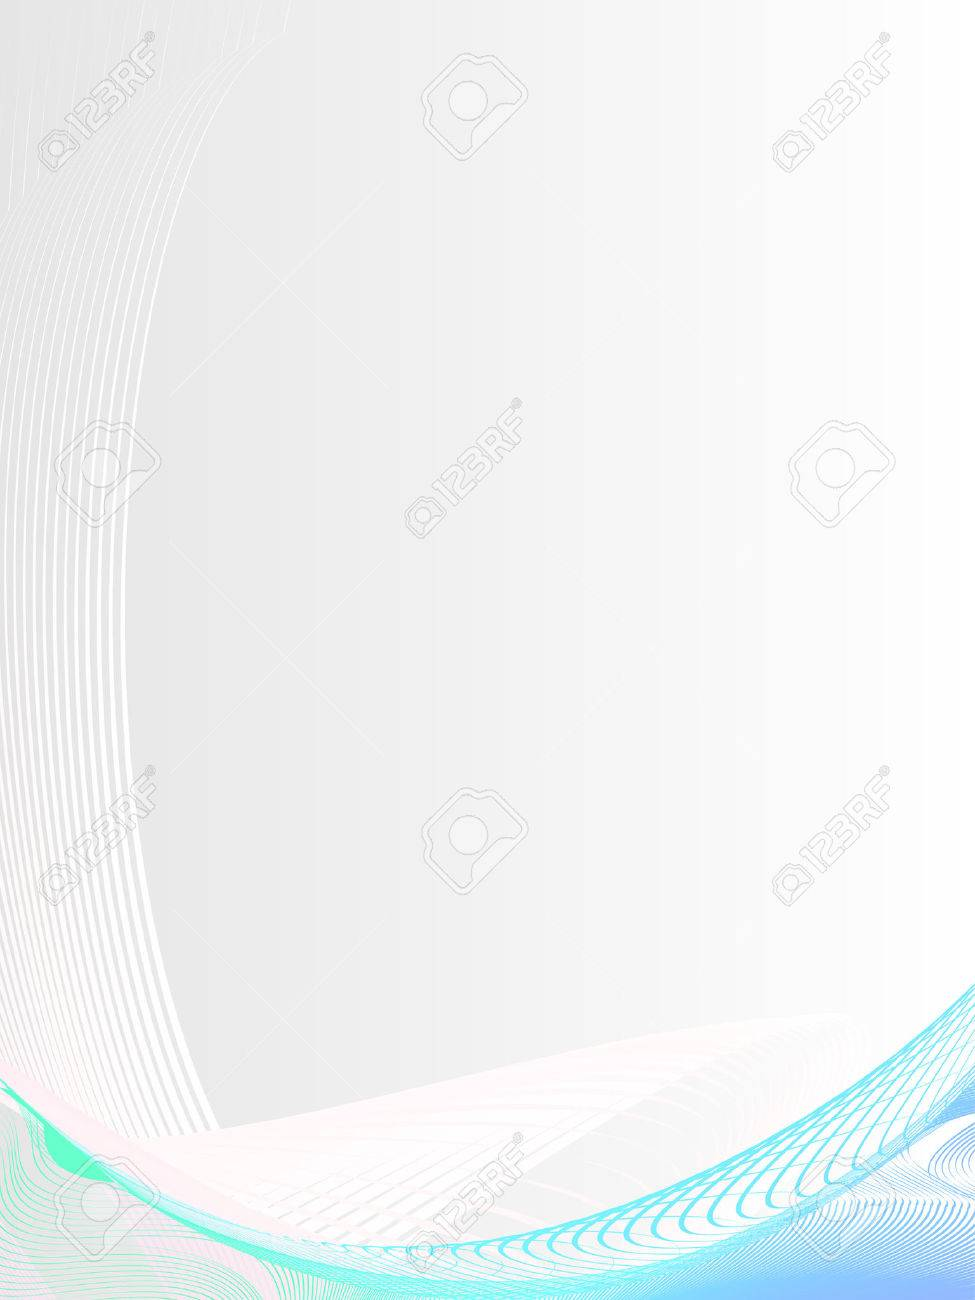 abstract background, stylized waves, place for text Stock Vector - 2544755